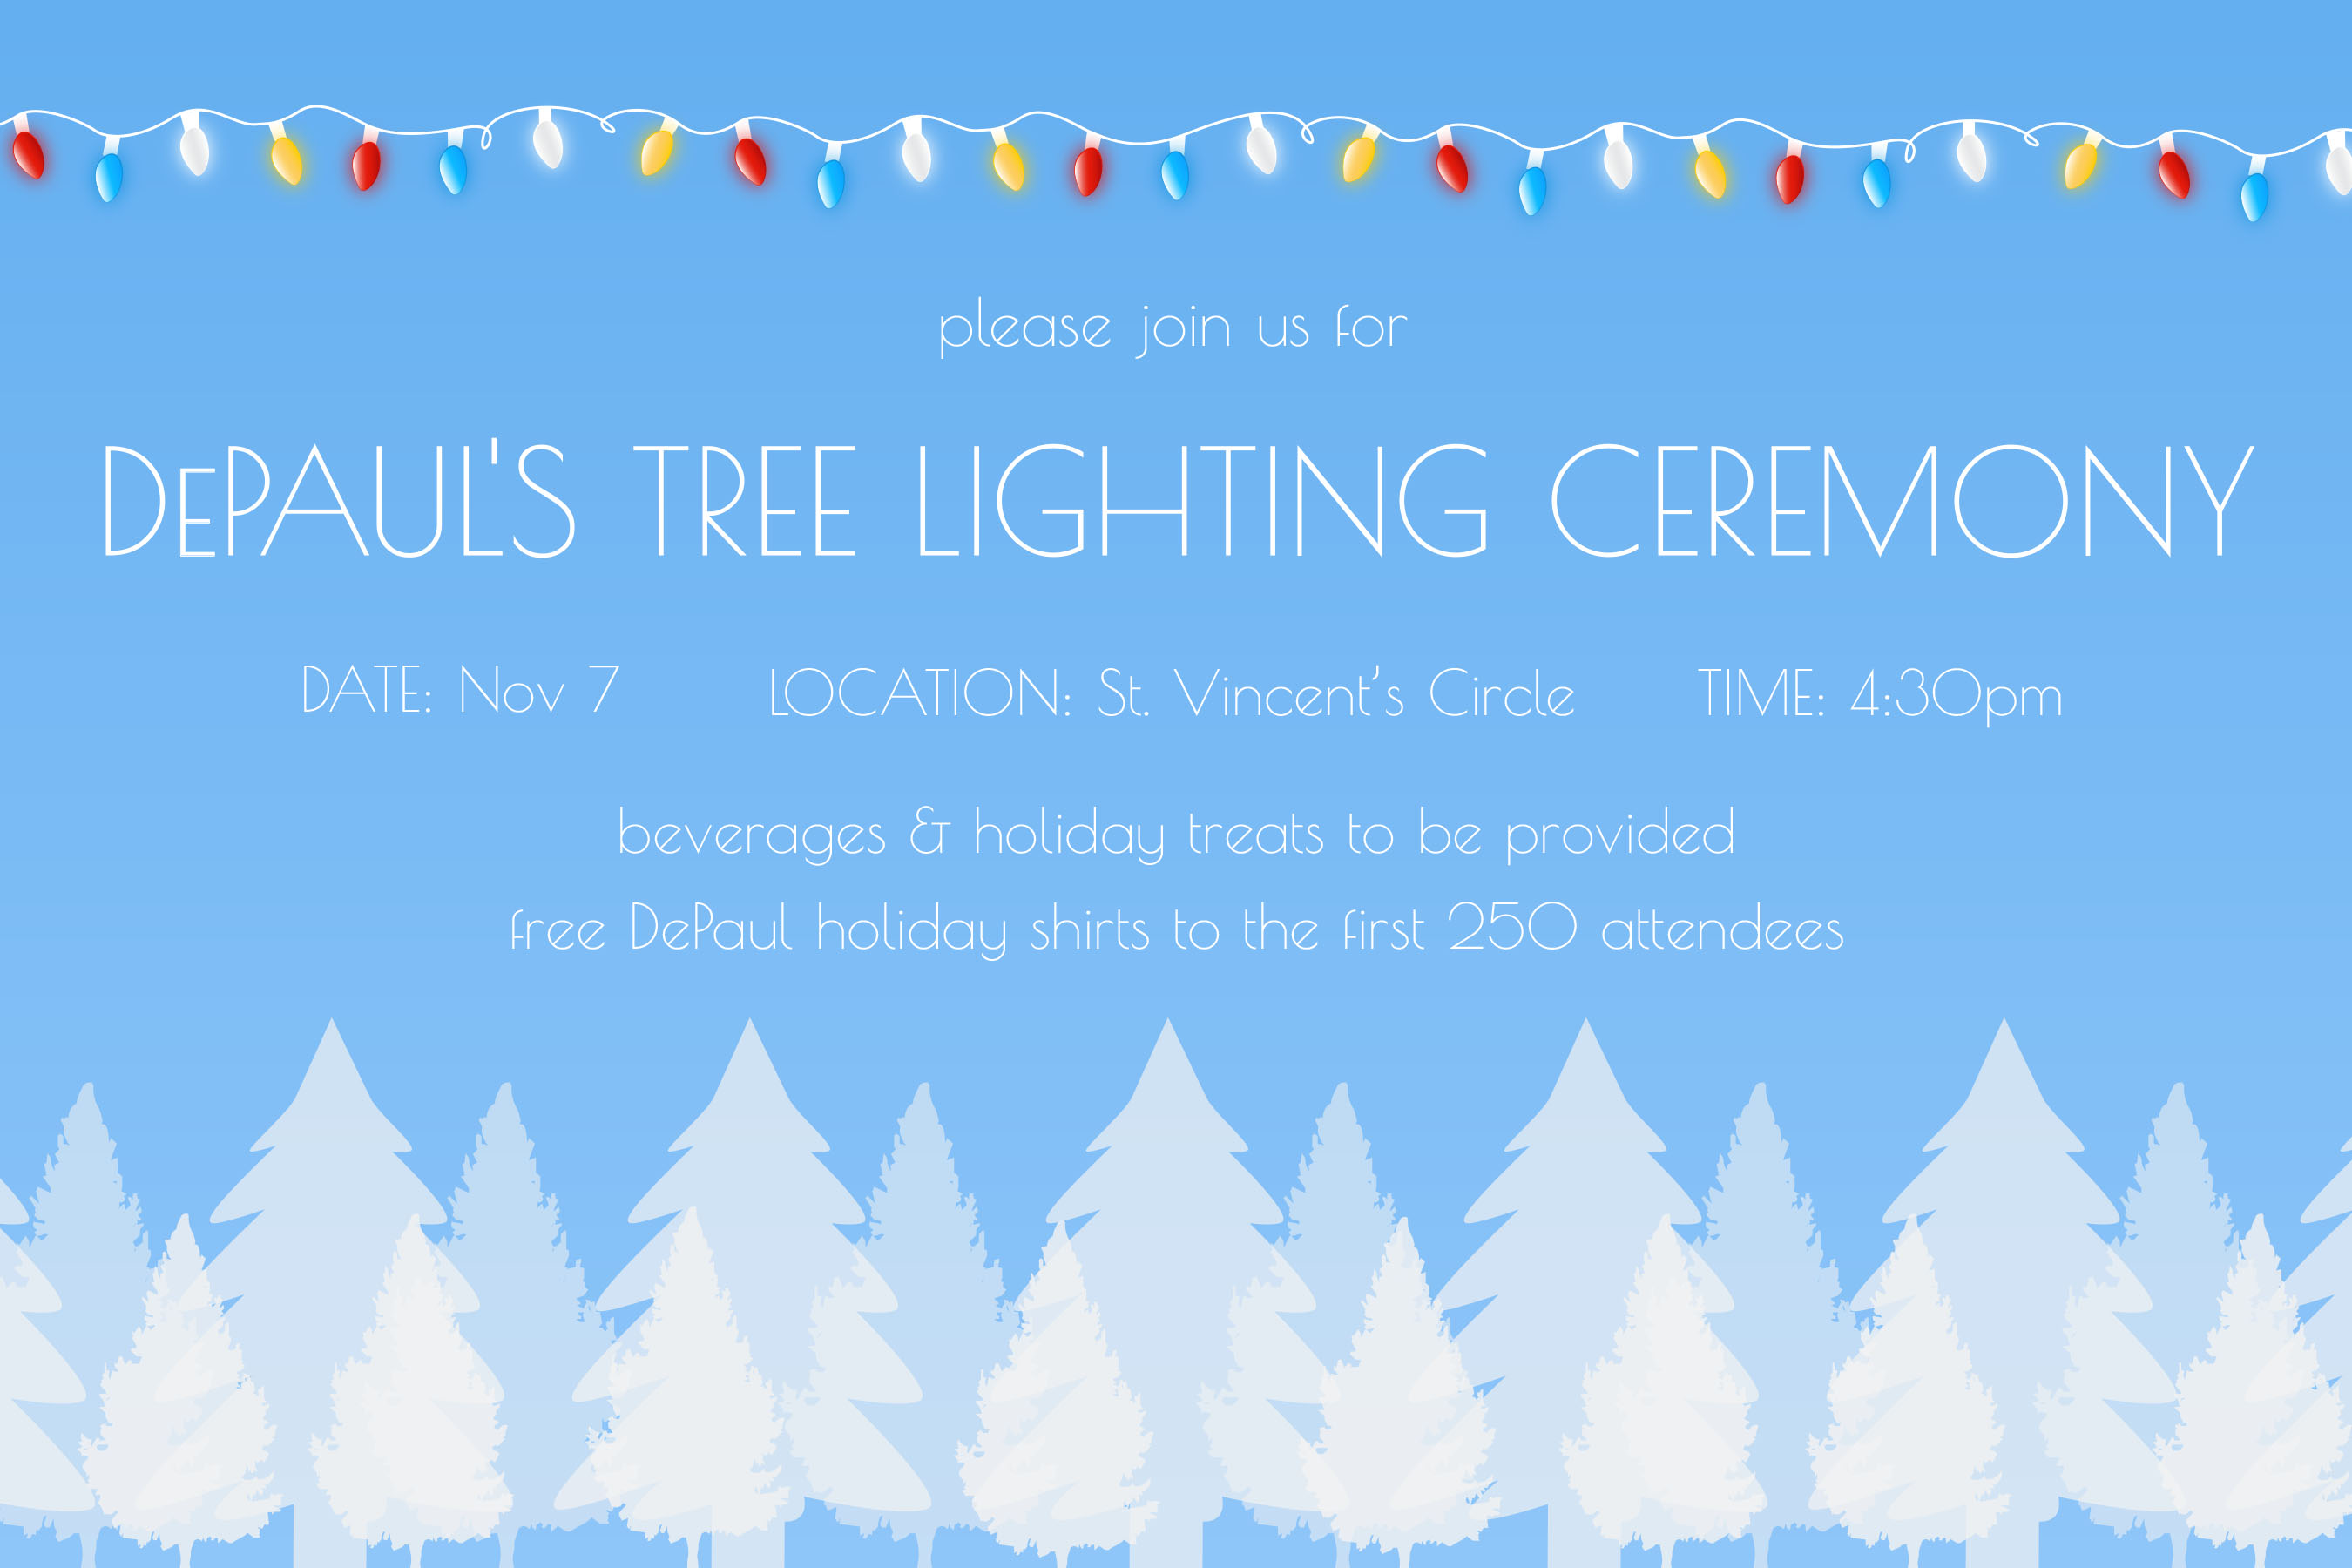 DePaul tree lighting